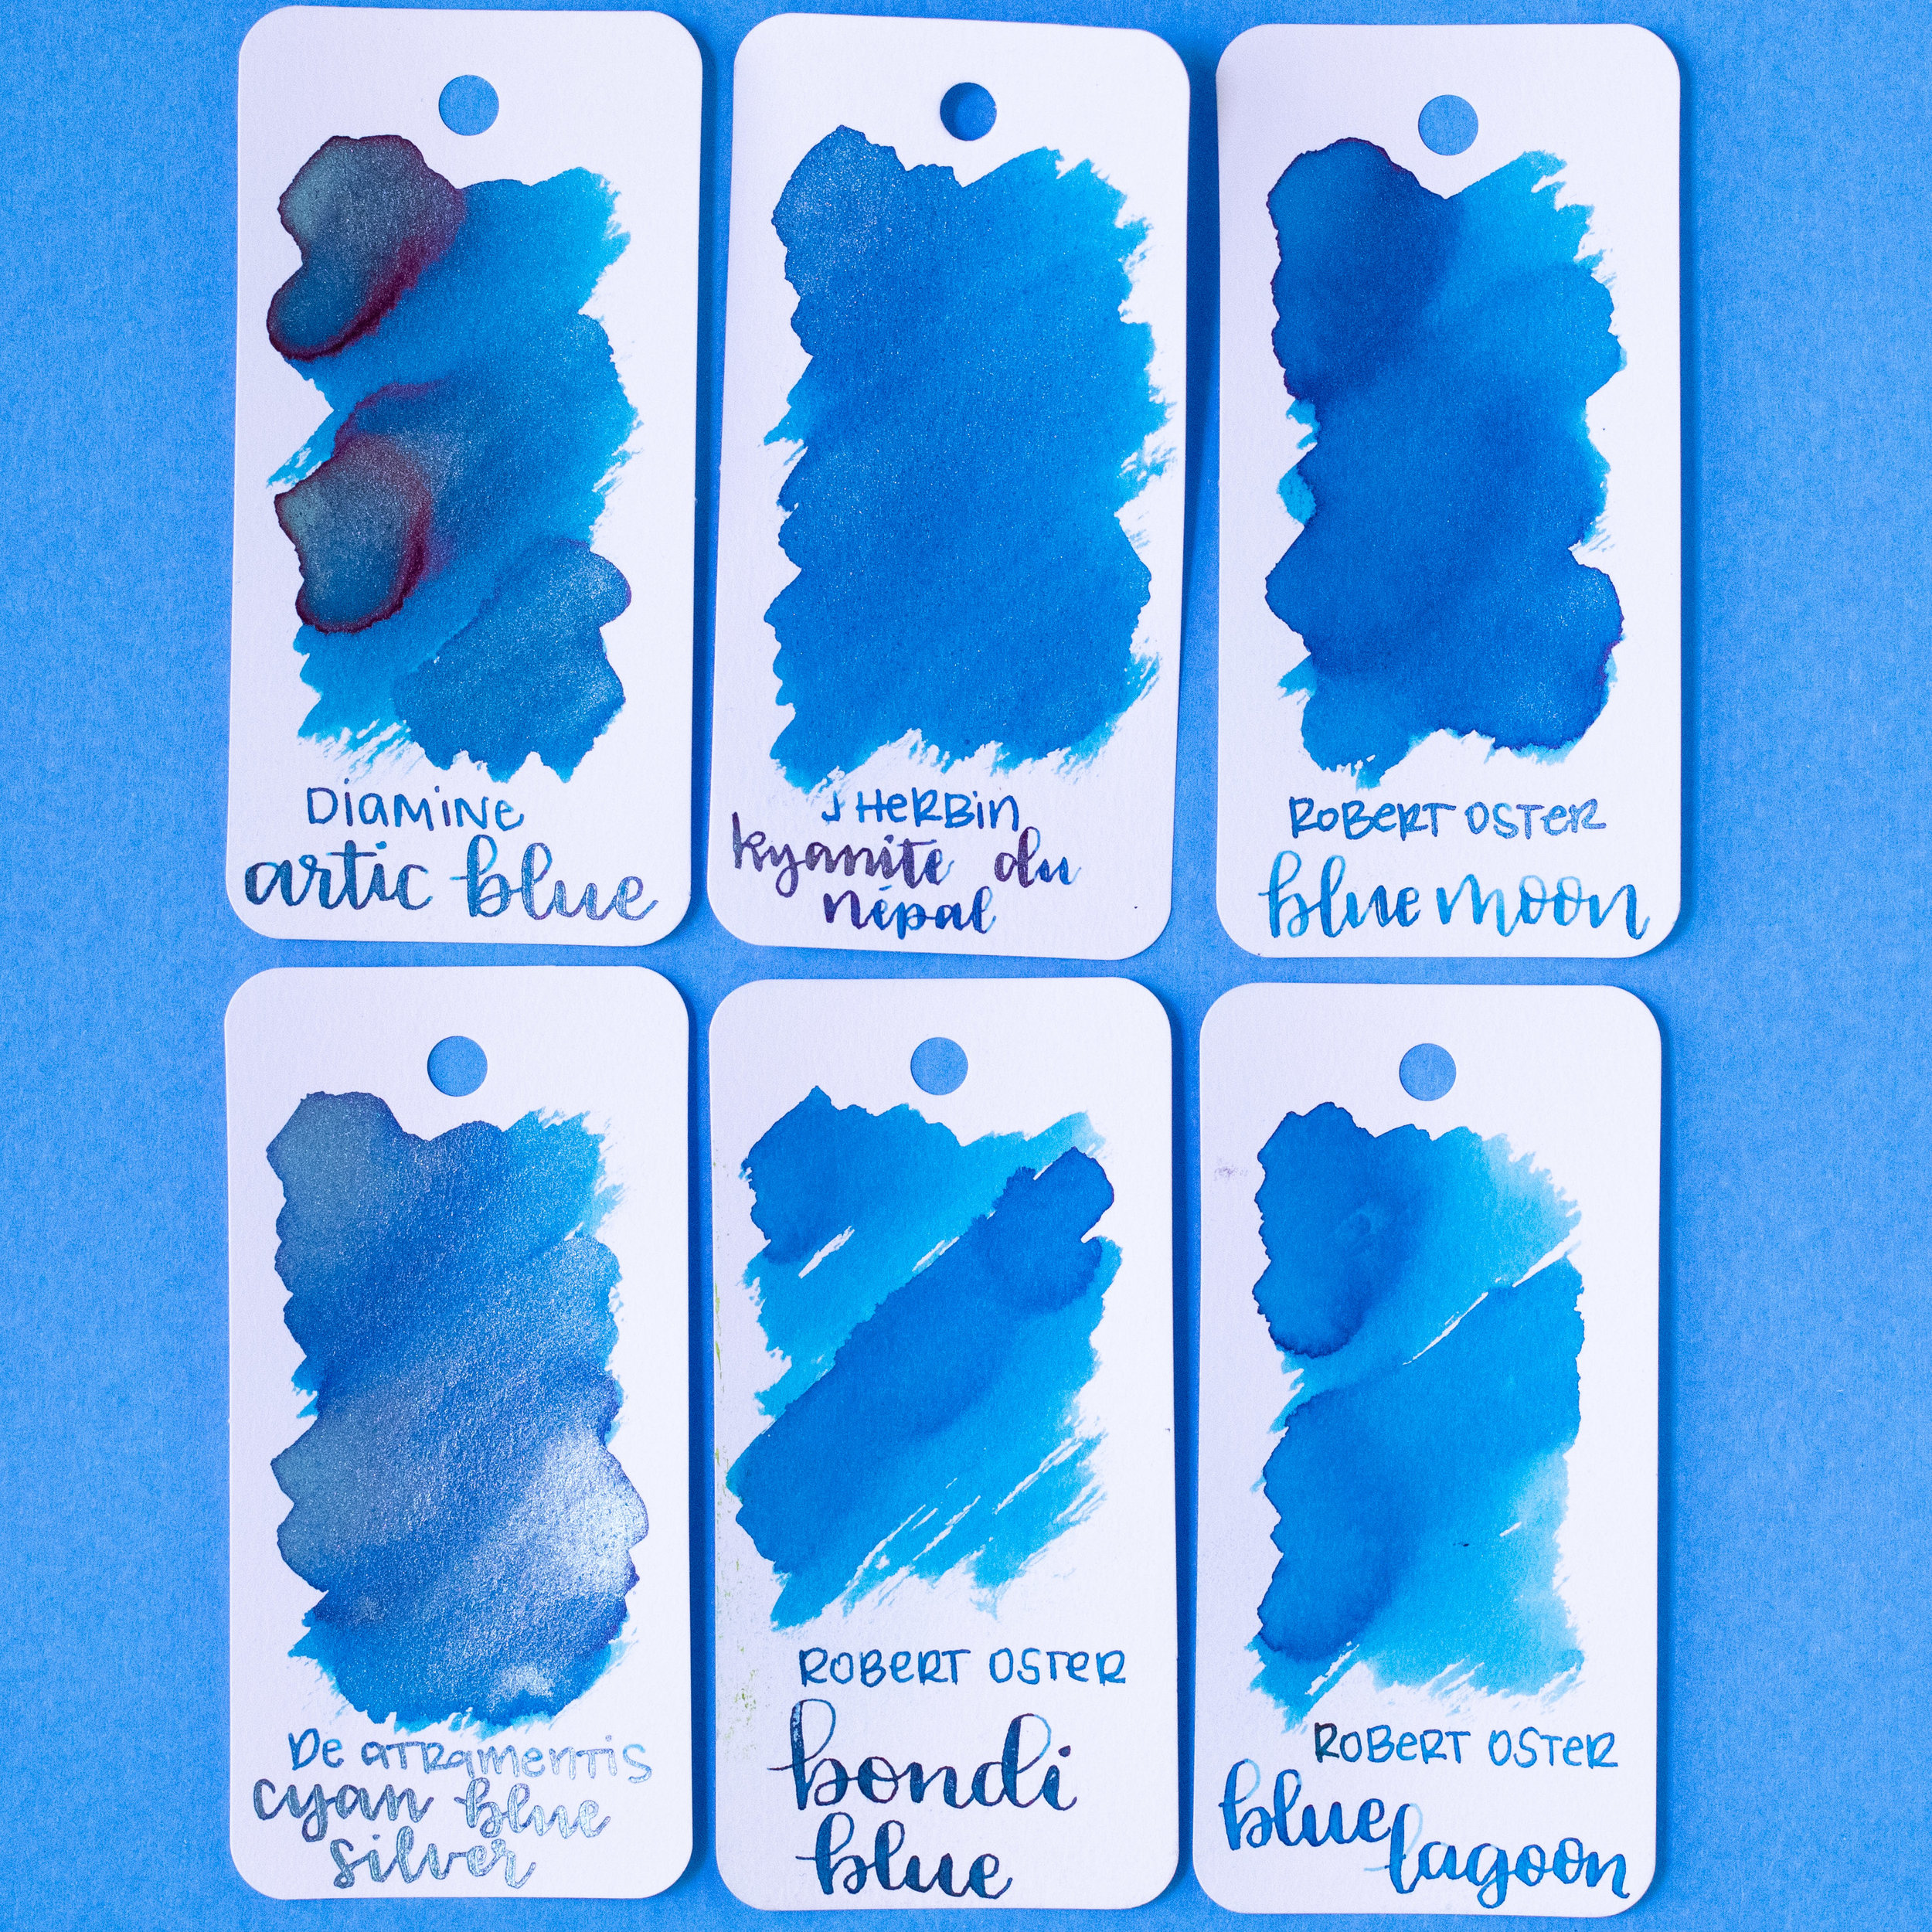 Similar inks: - Kyanite du Nepal is closest to De Atramentis Cyan Blue Silver. It's a bit brighter than Robert Oster Blue Moon, and a bit darker than Diamine Arctic Blue. Click here to see the J Herbin inks together, and click here to see the blue inks together.